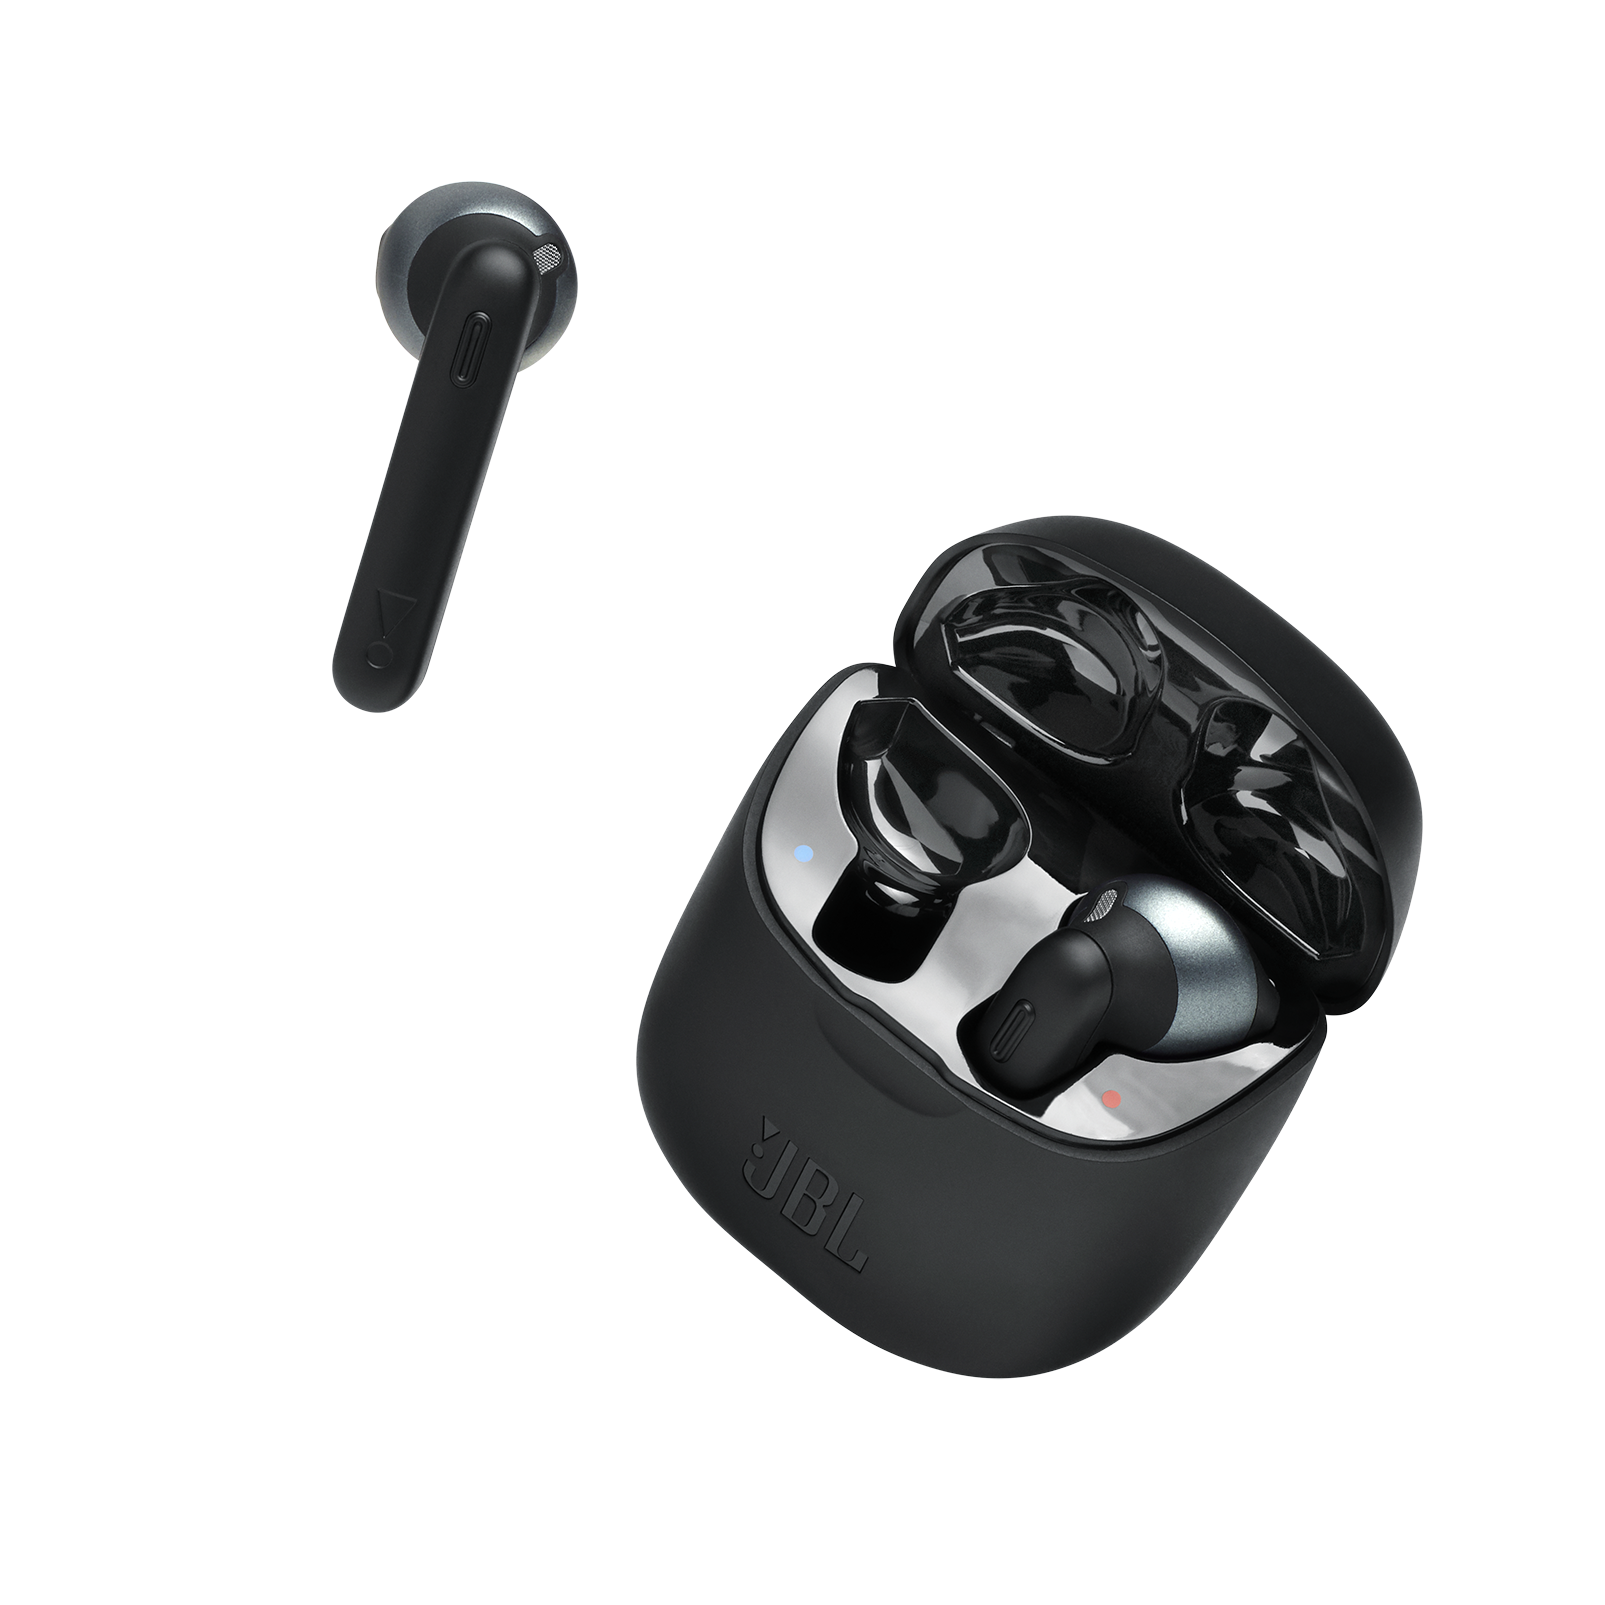 JBL TUNE 220TWS - Black - True wireless earbuds - Detailshot 2